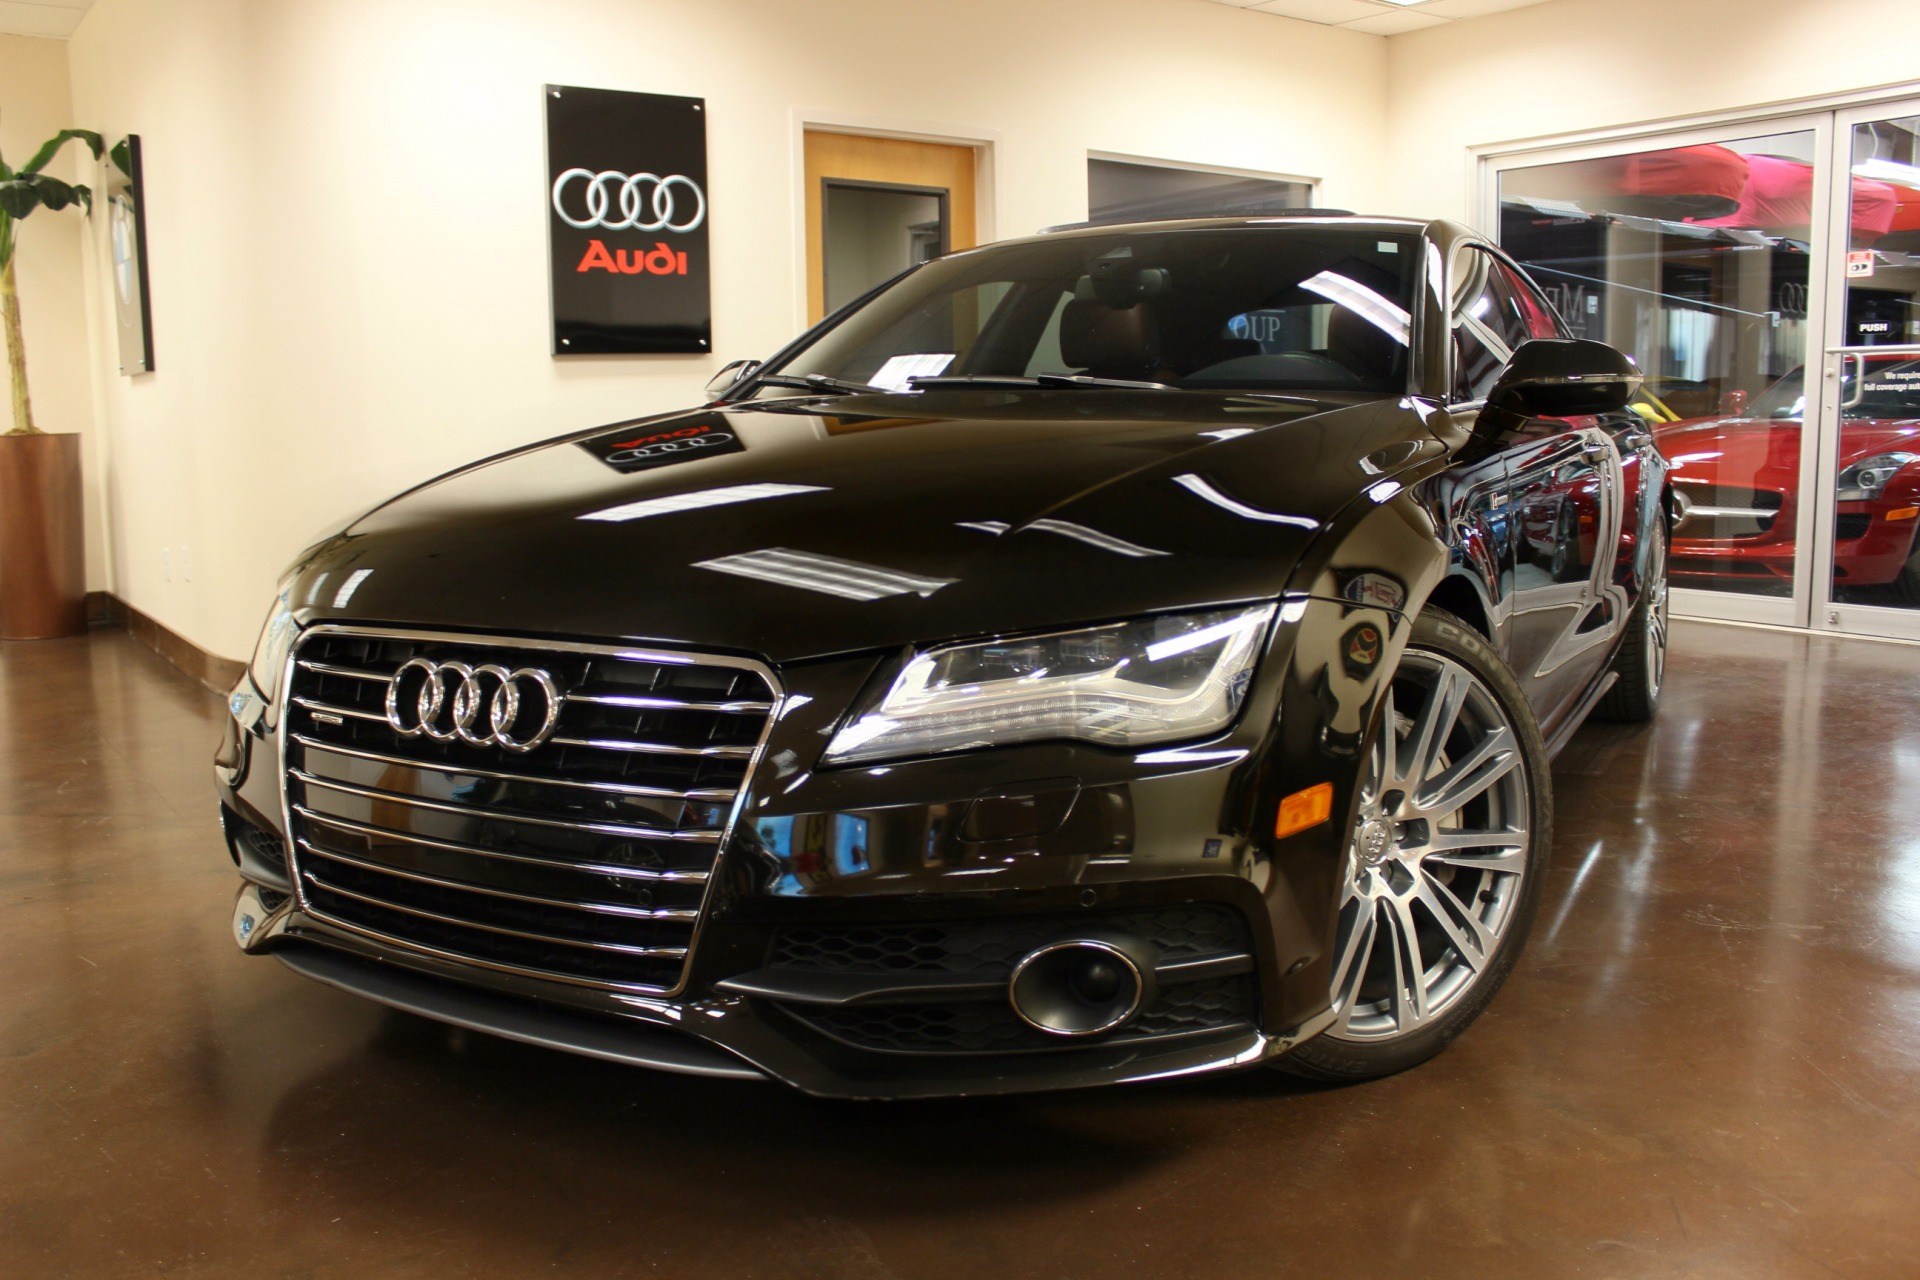 Used 2013 Audi A7 stock P3758A - Ultra Luxury Car from Merlin Auto